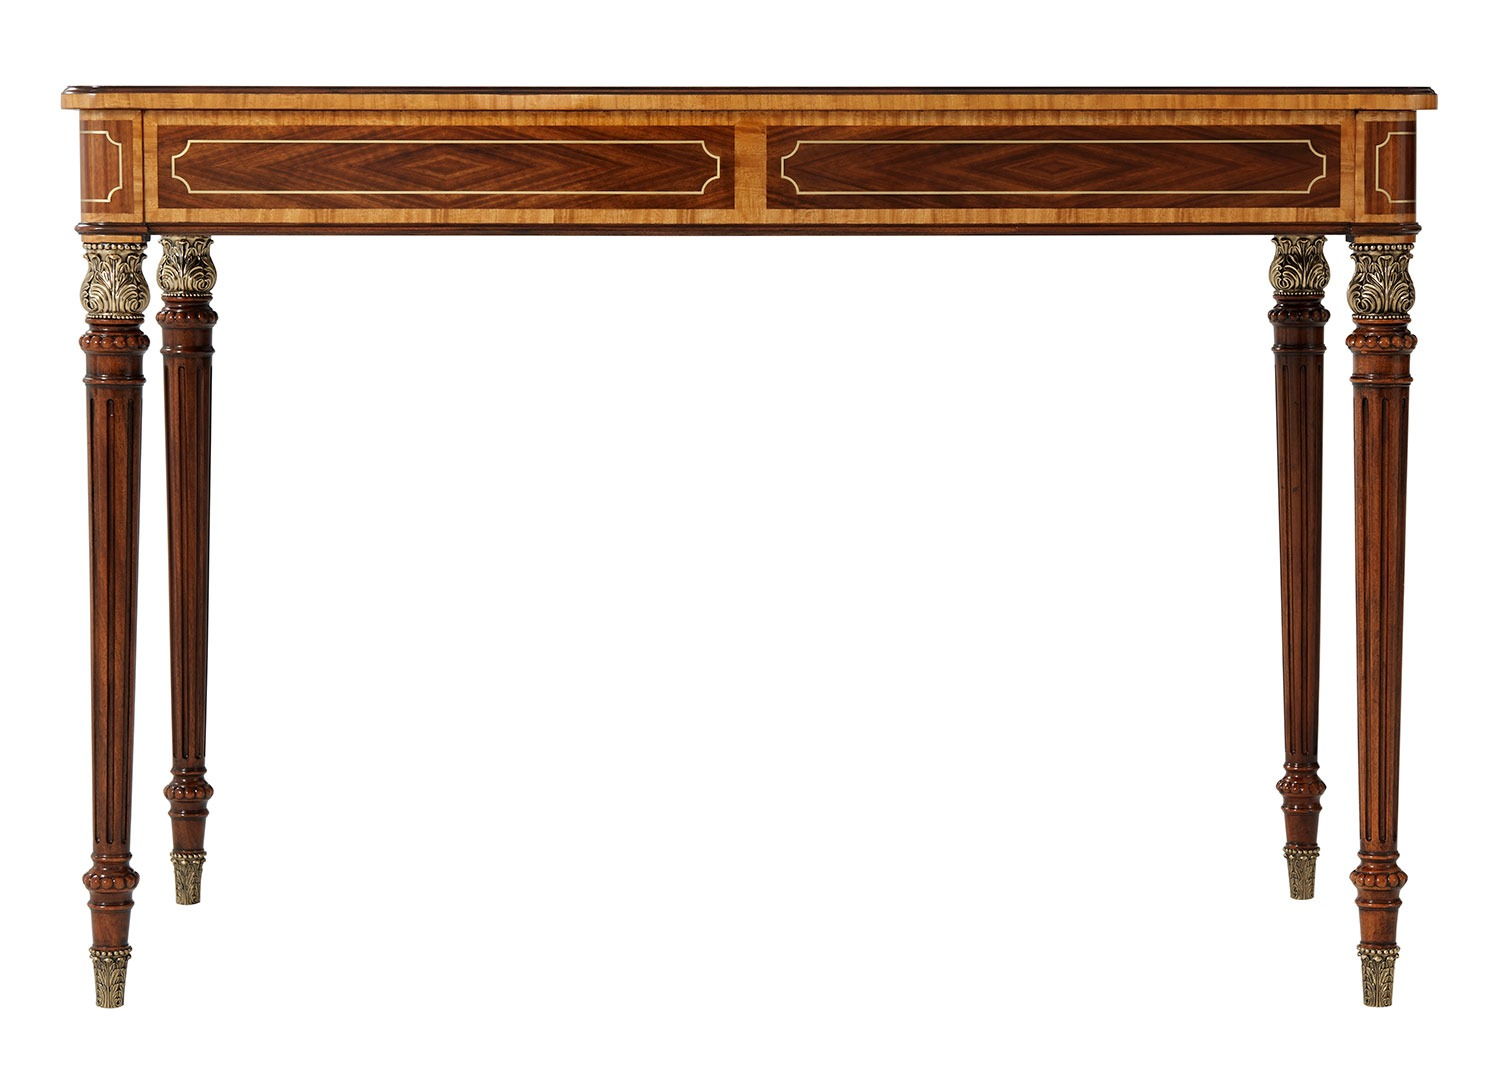 Floral Inlaid Mahogany Desk or Writing Table